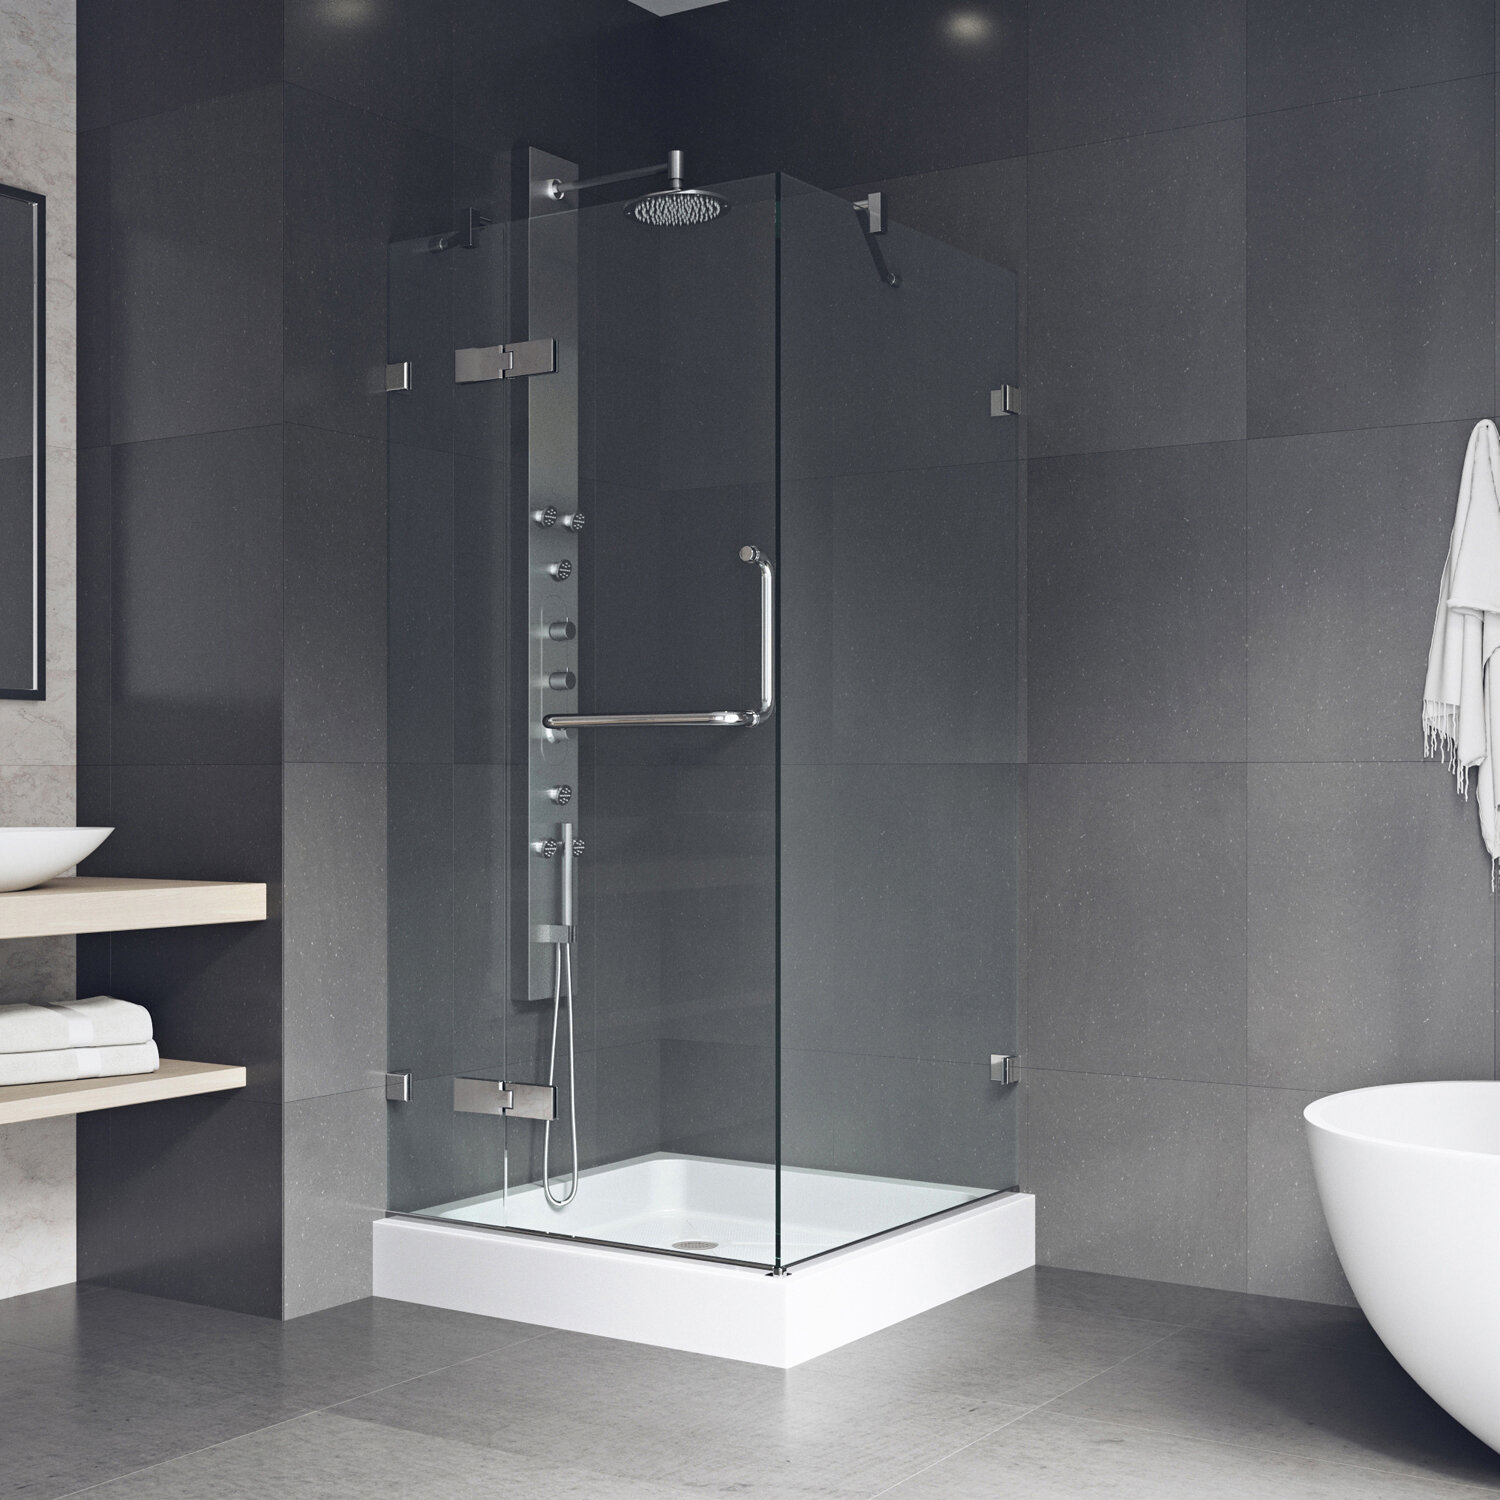 Monteray 32 37 X 79 25 Square Pivot Shower Enclosure With Base Included